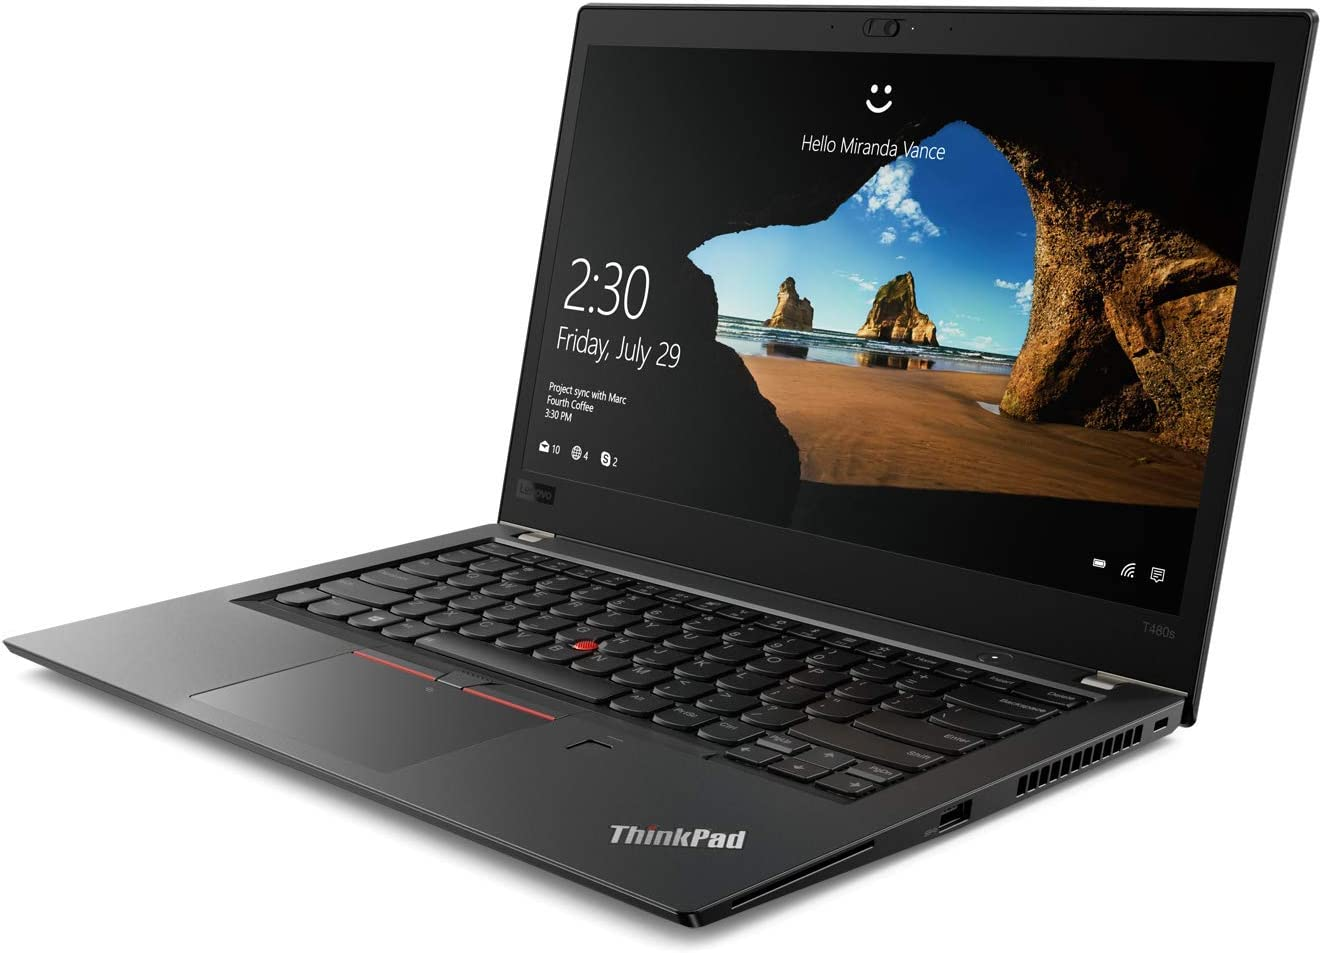 "OEM Lenovo ThinkPad T480s Laptop 14"" FHD IPS Display 1920x1080, Intel Quad Core i5-8250U, 8GB RAM, 256GB NVMe, Fingerprint, W10P"